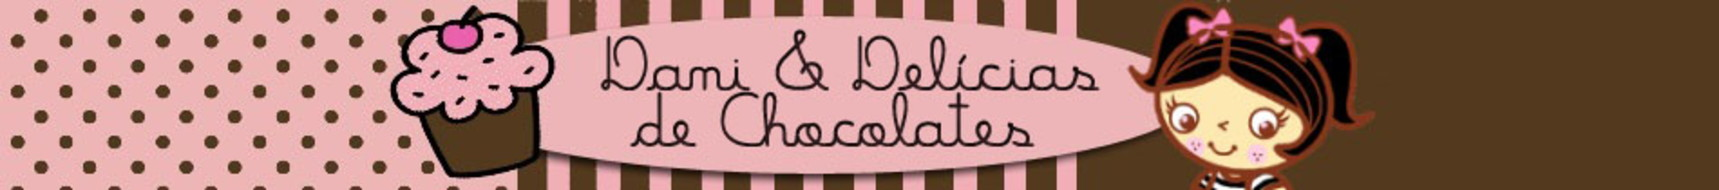 DELCIAS DE CHOCOLATE